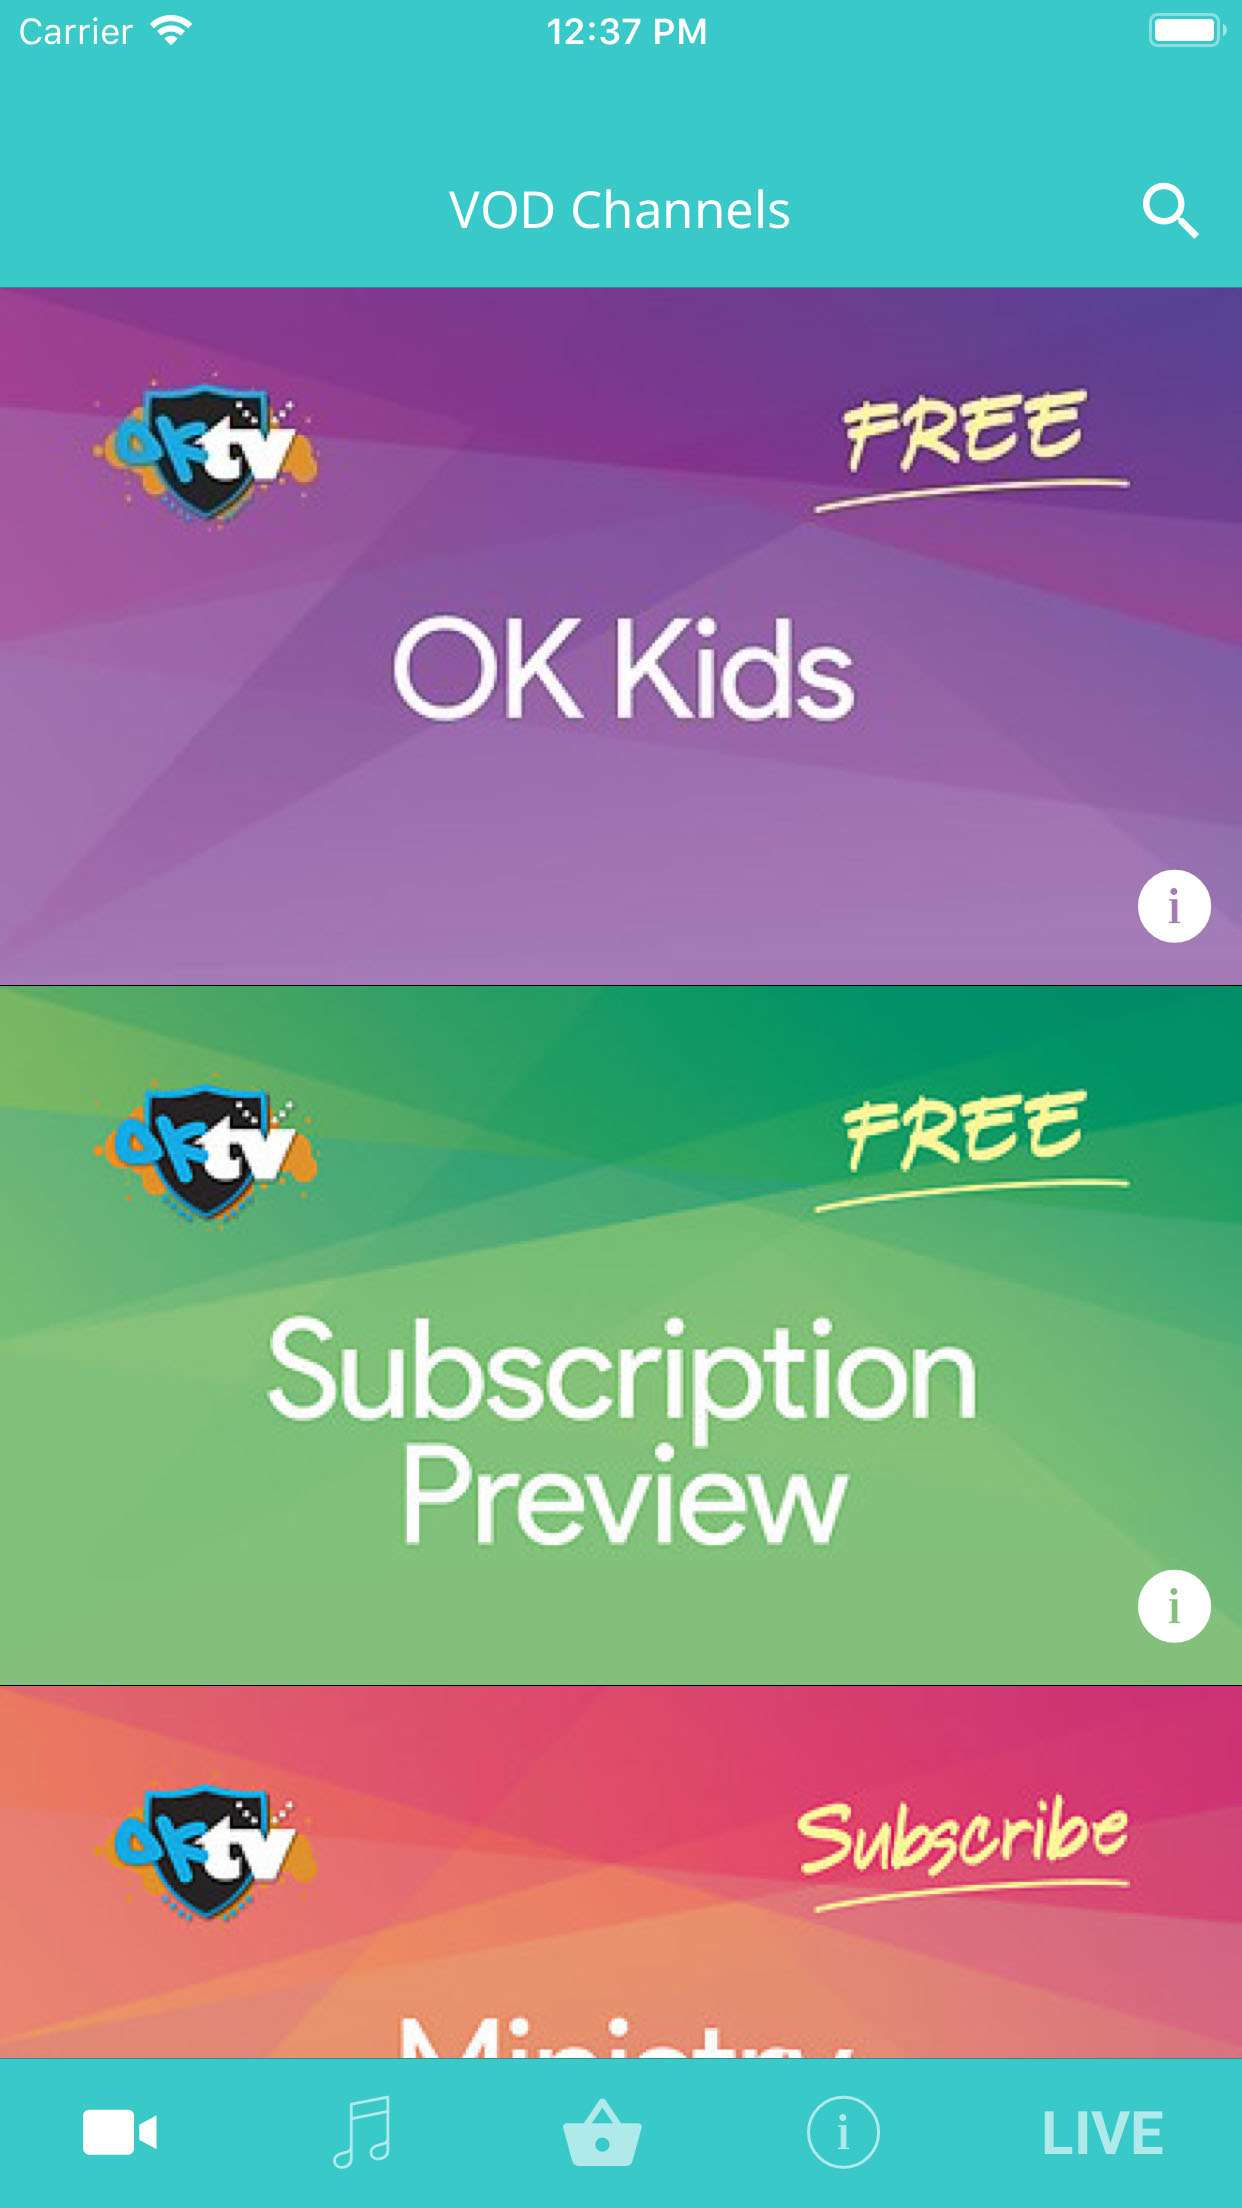 OKTV  - A voice for children  iOS Screenshot 001